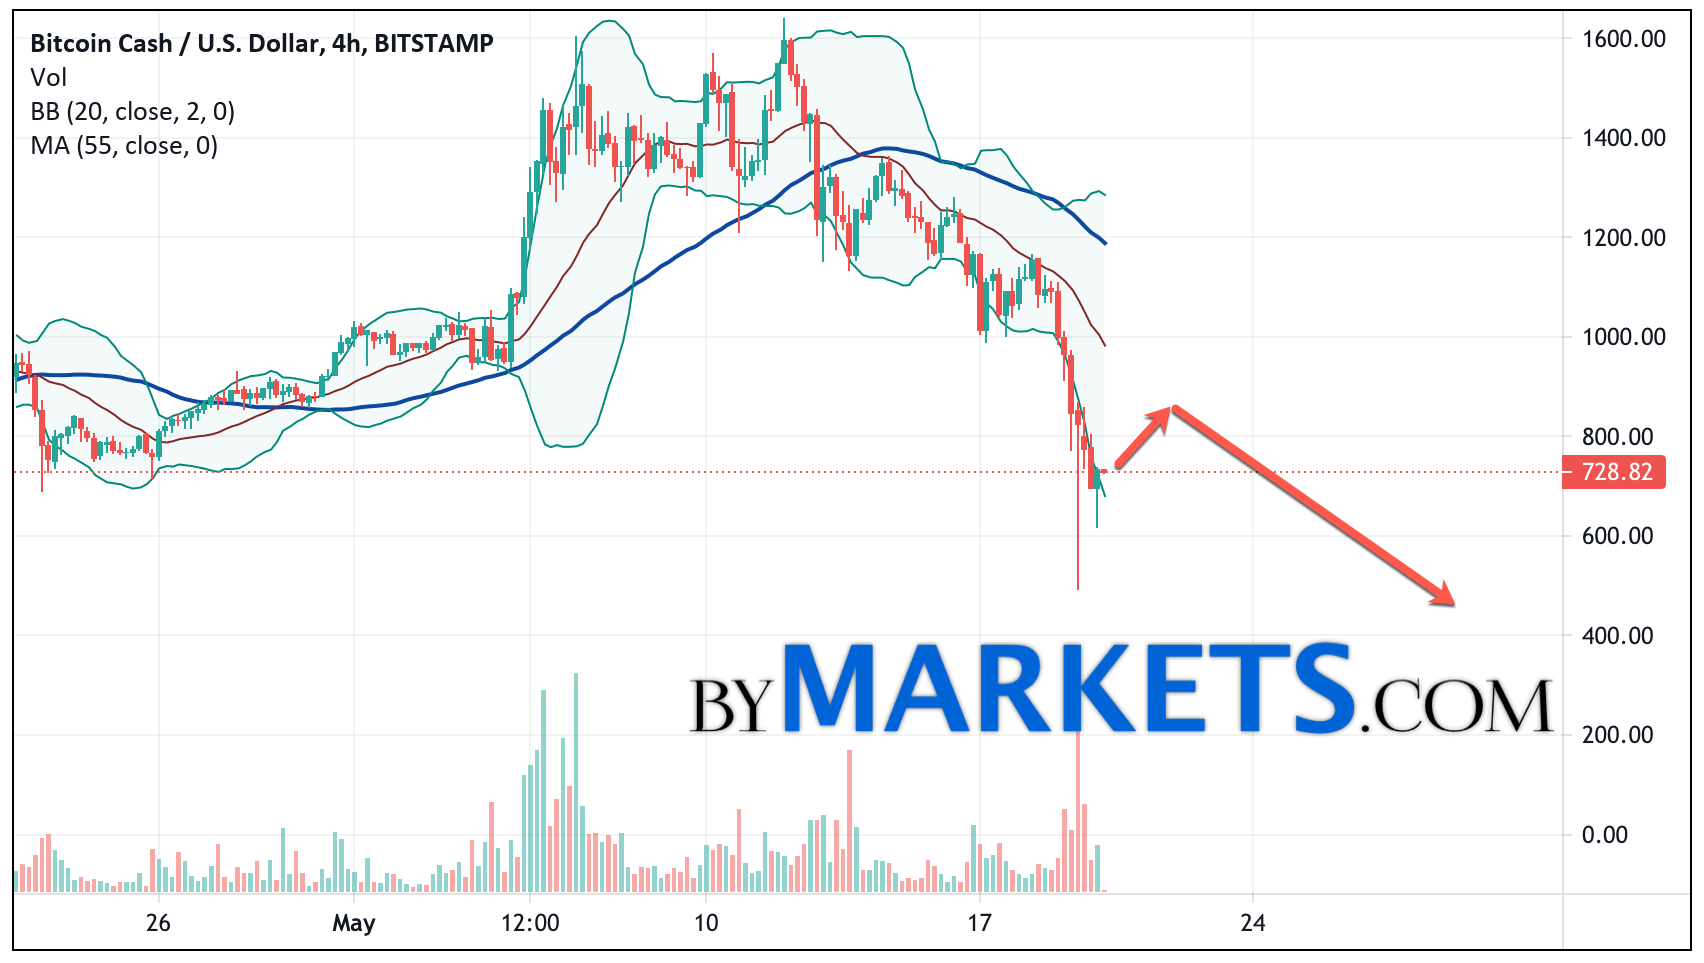 Bitcoin Cash (BCH/USD) forecast and analysis on May 21, 2021